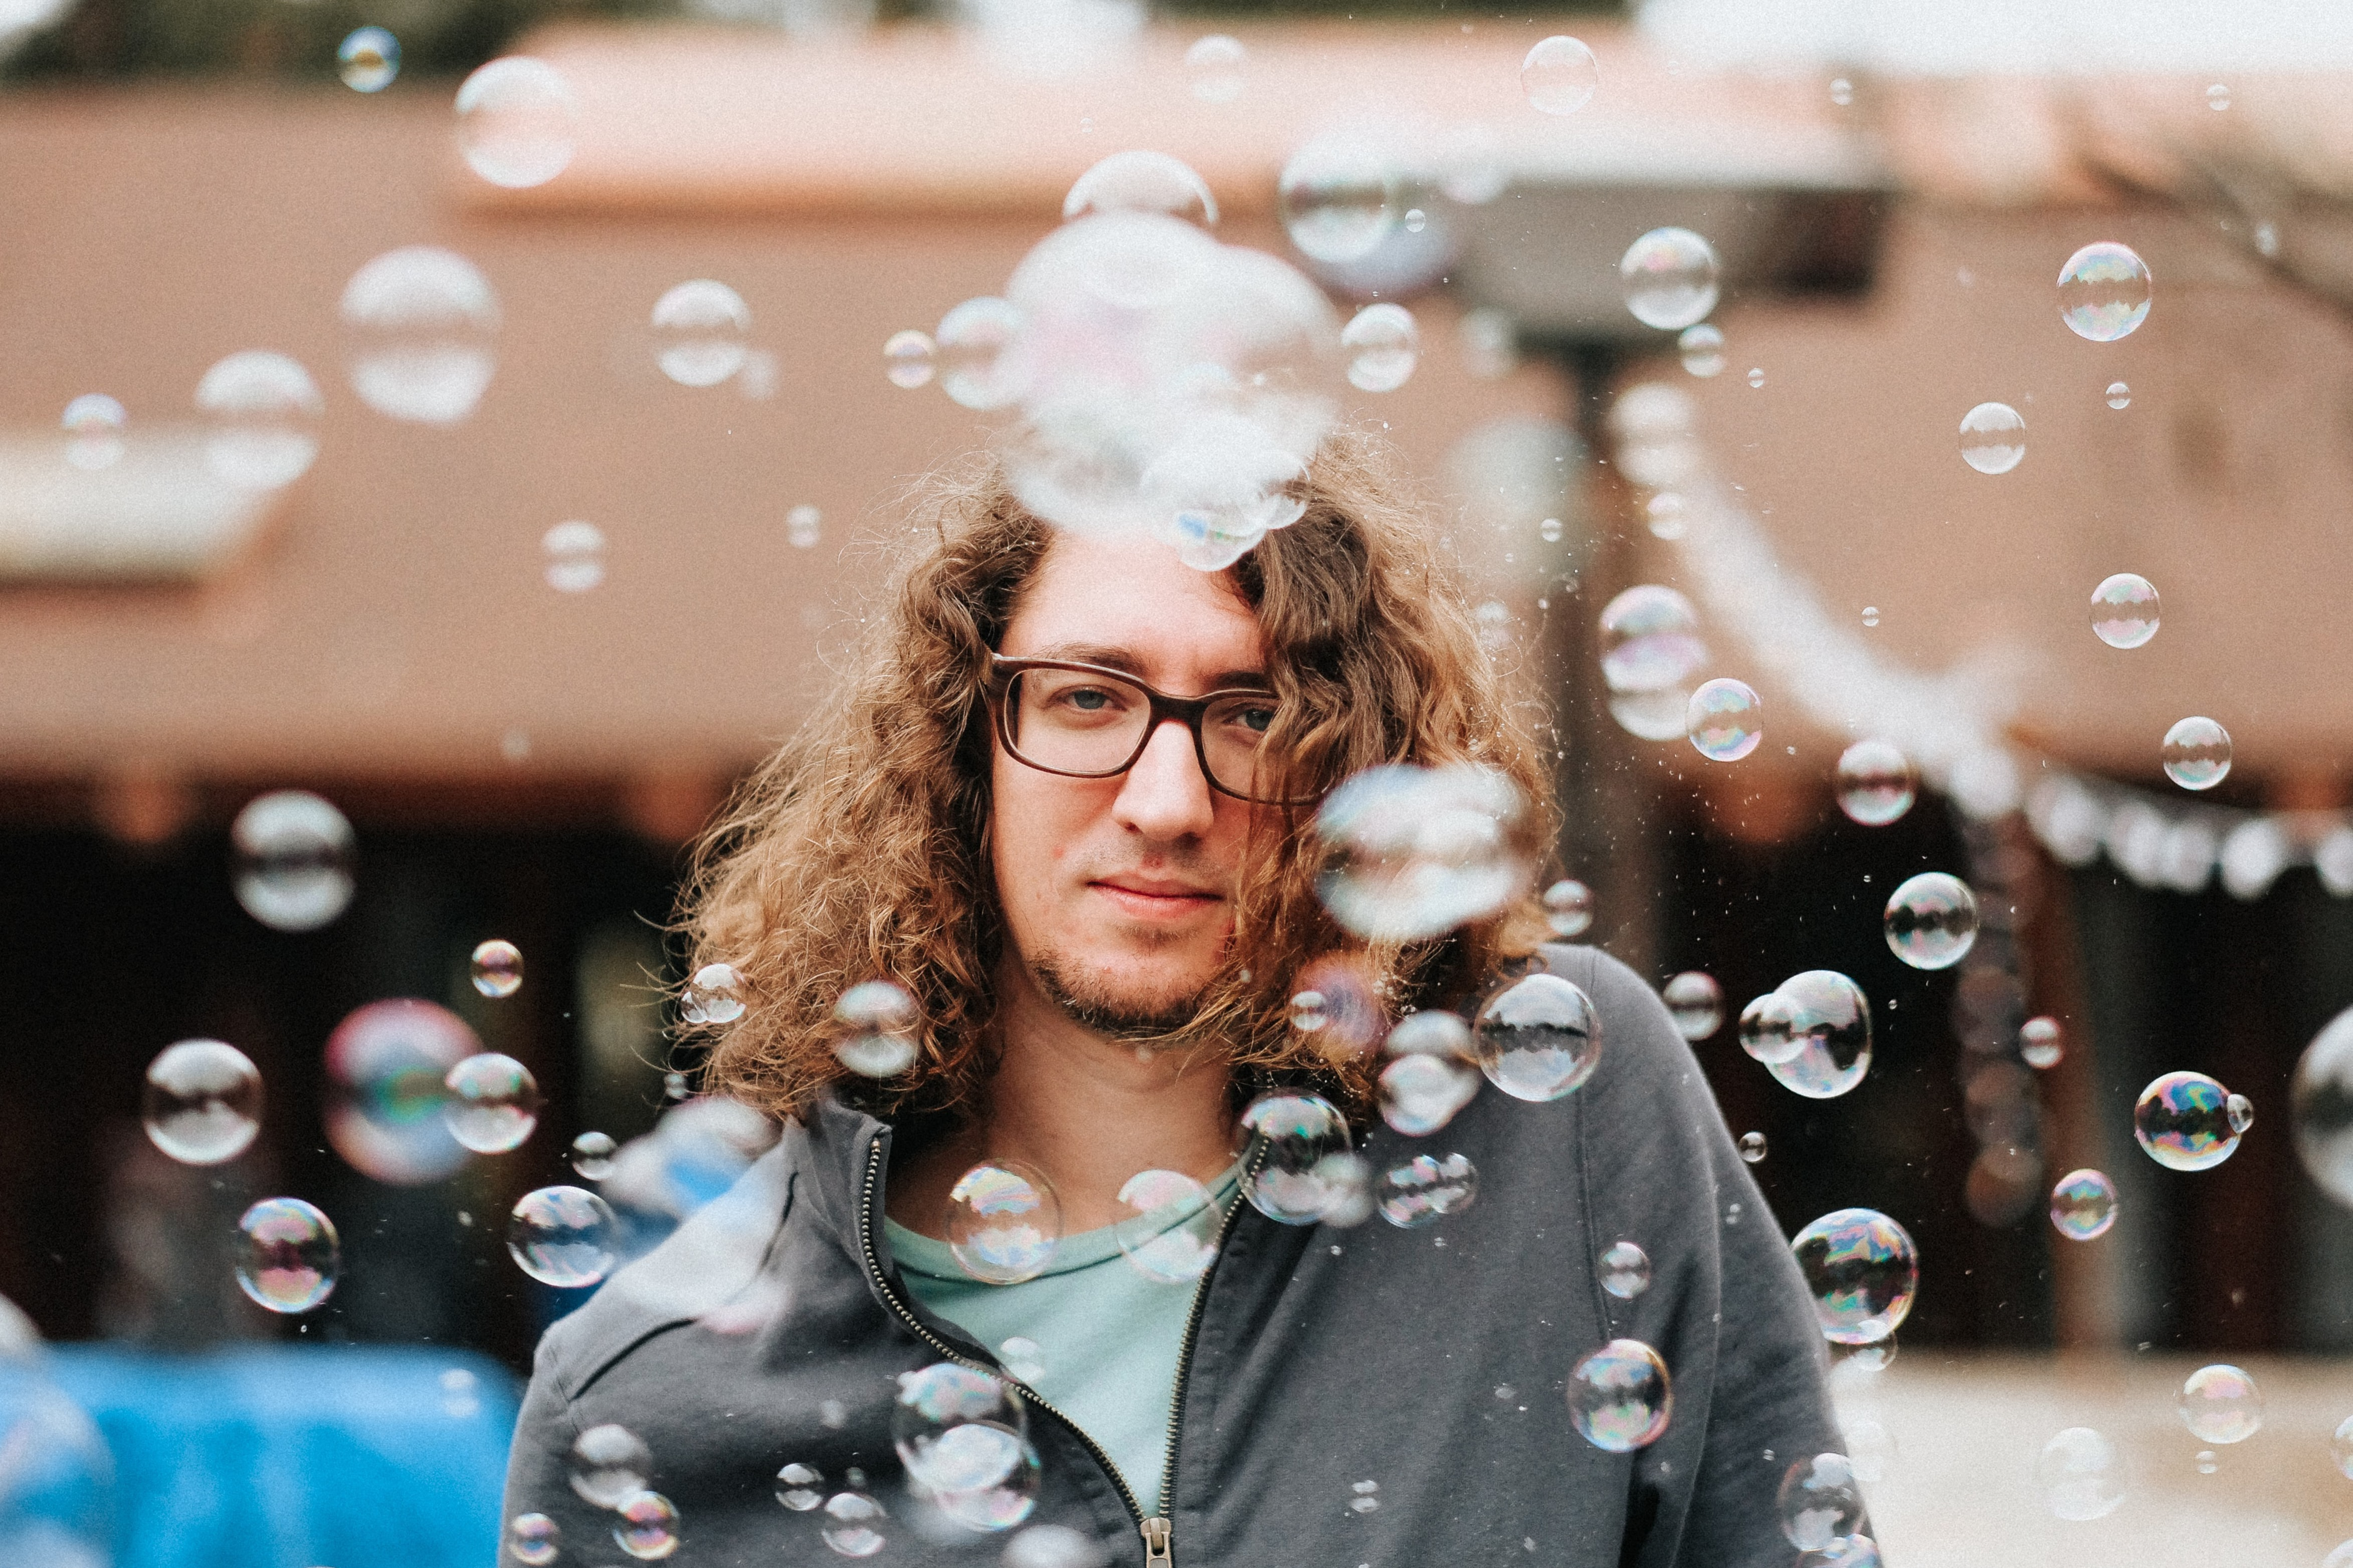 man standing while surrounded by bubbles